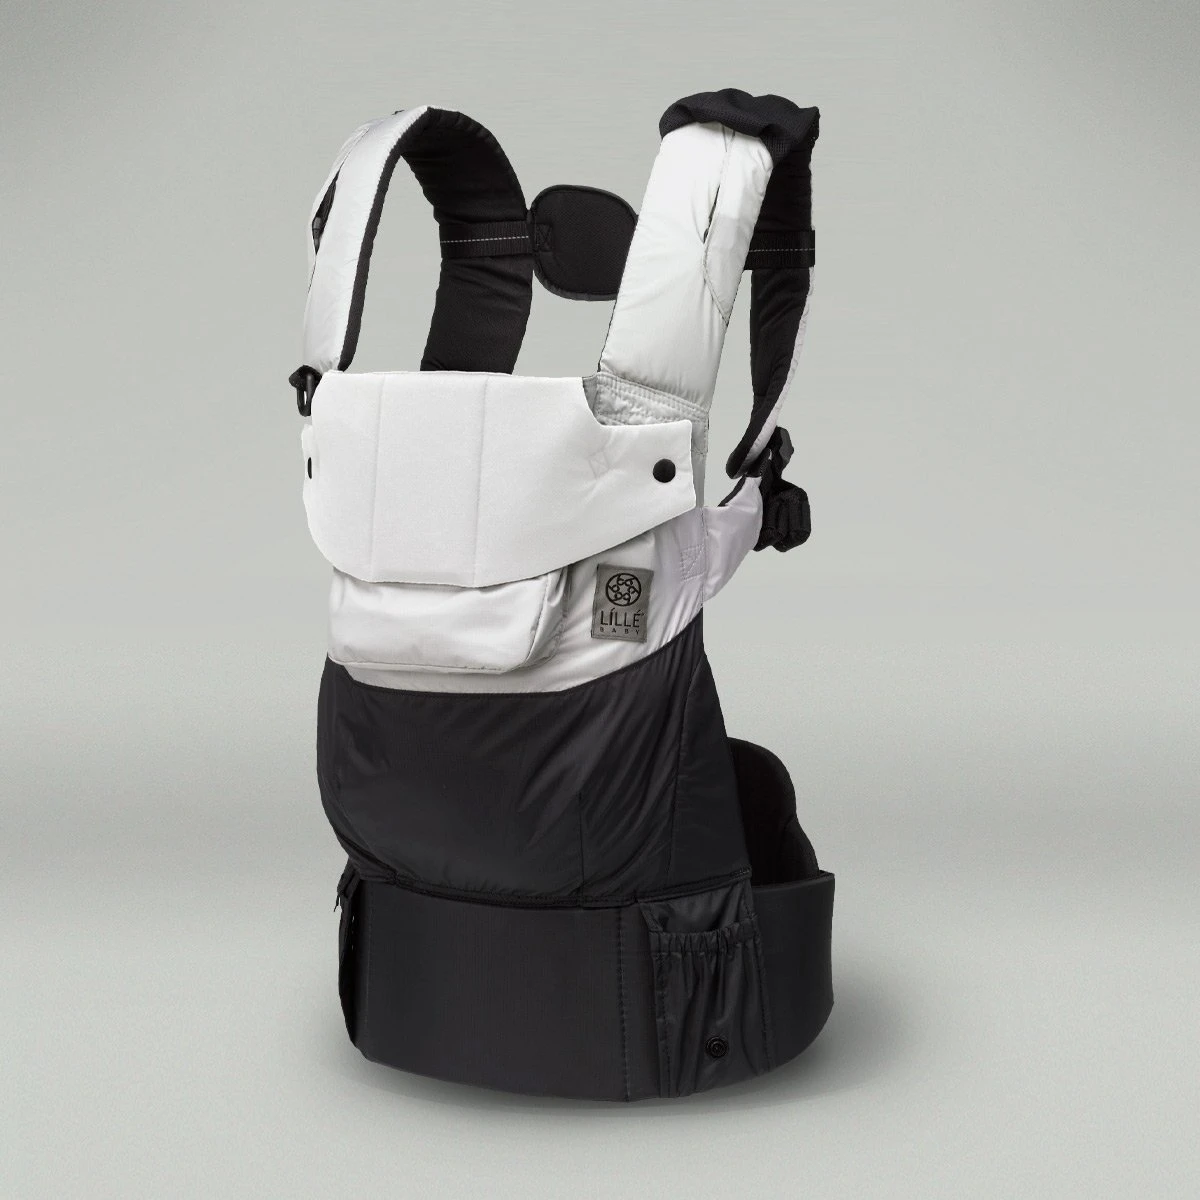 LILLEbaby Pursuit Sport Carrier in Air